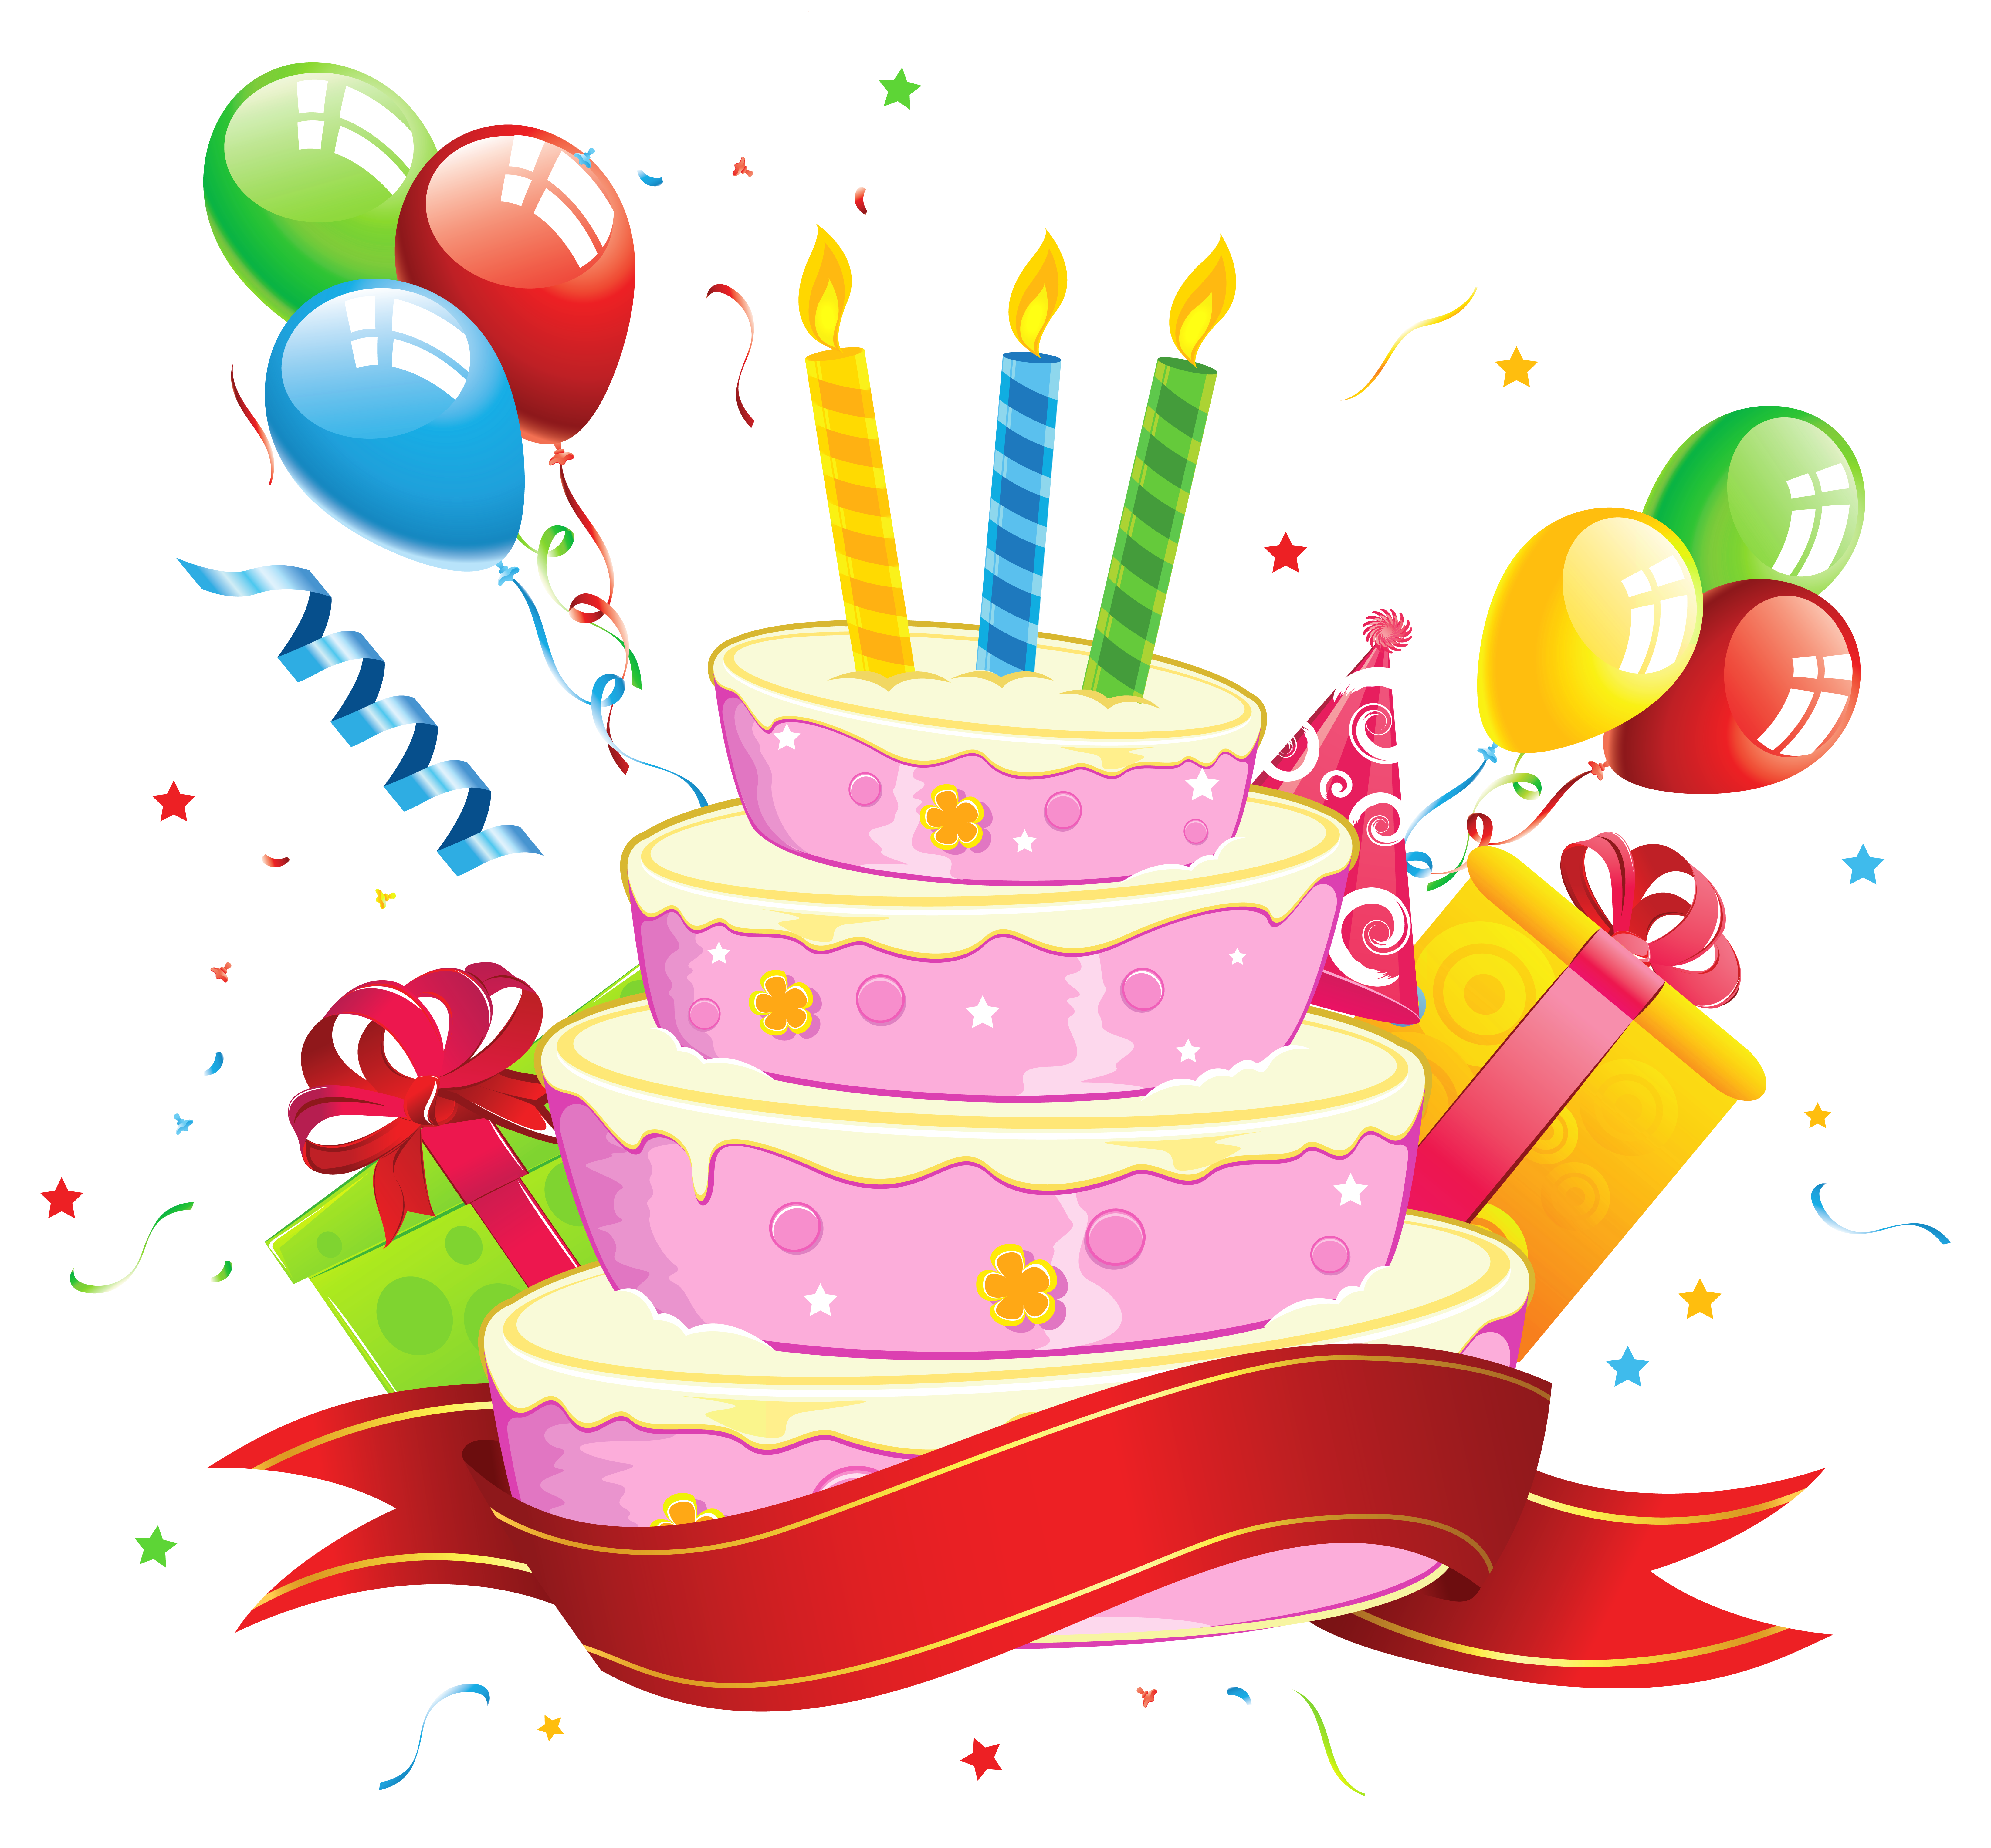 Birthday cake clipart images clipart free Cake Clipart - Cake Clipart Images | Clipart Net clipart free